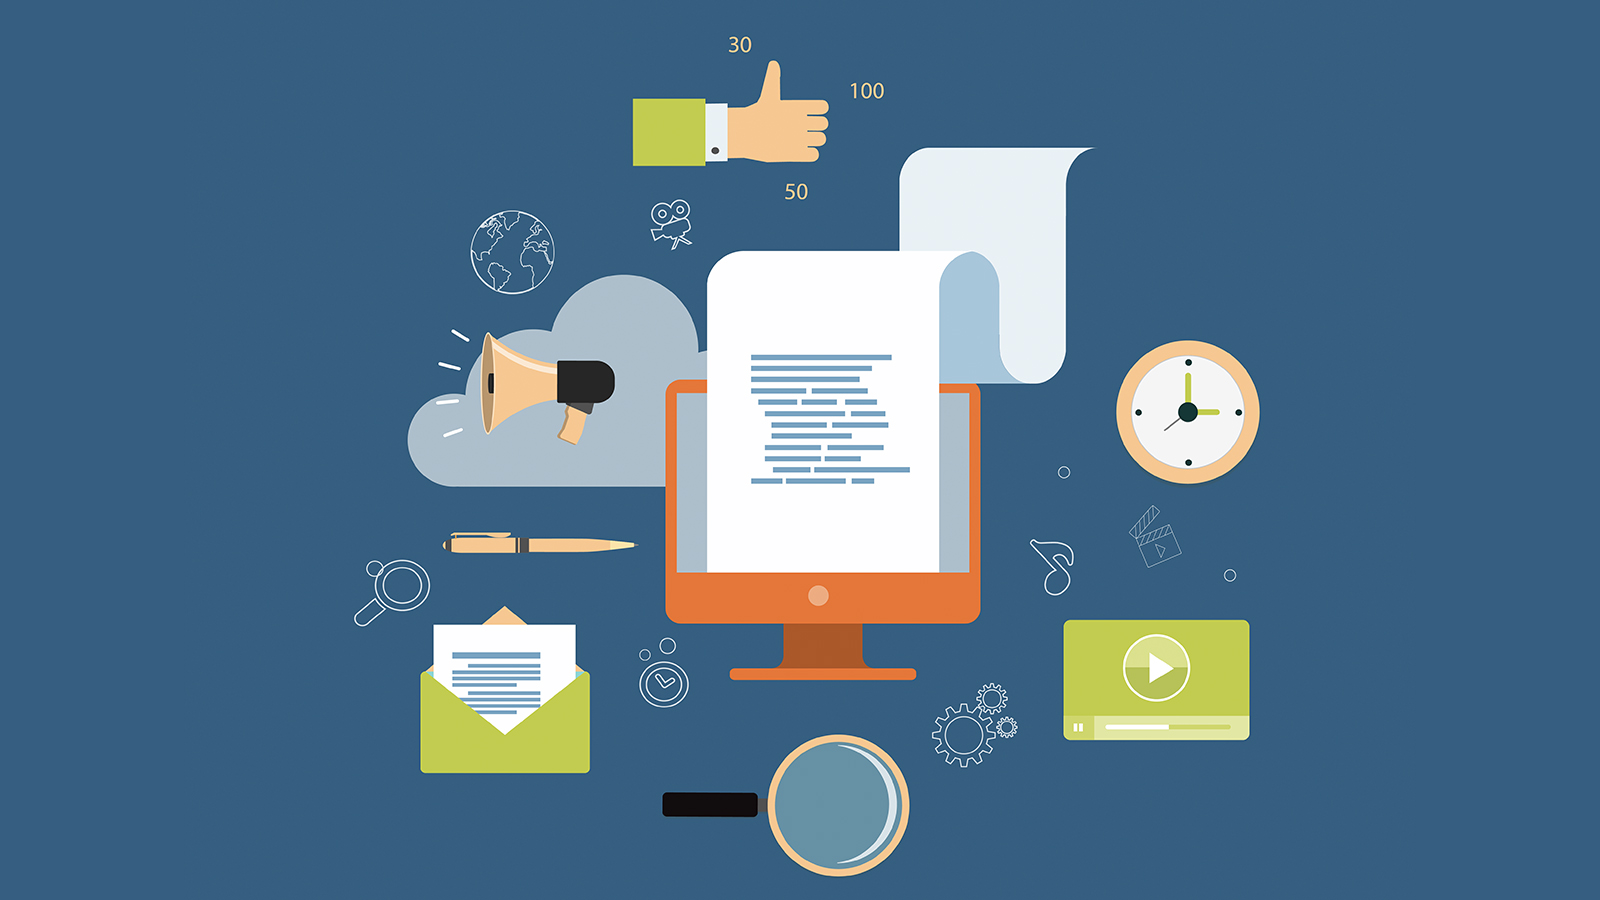 SEO & Content Marketing Go Hand-In-Hand - Here's Why